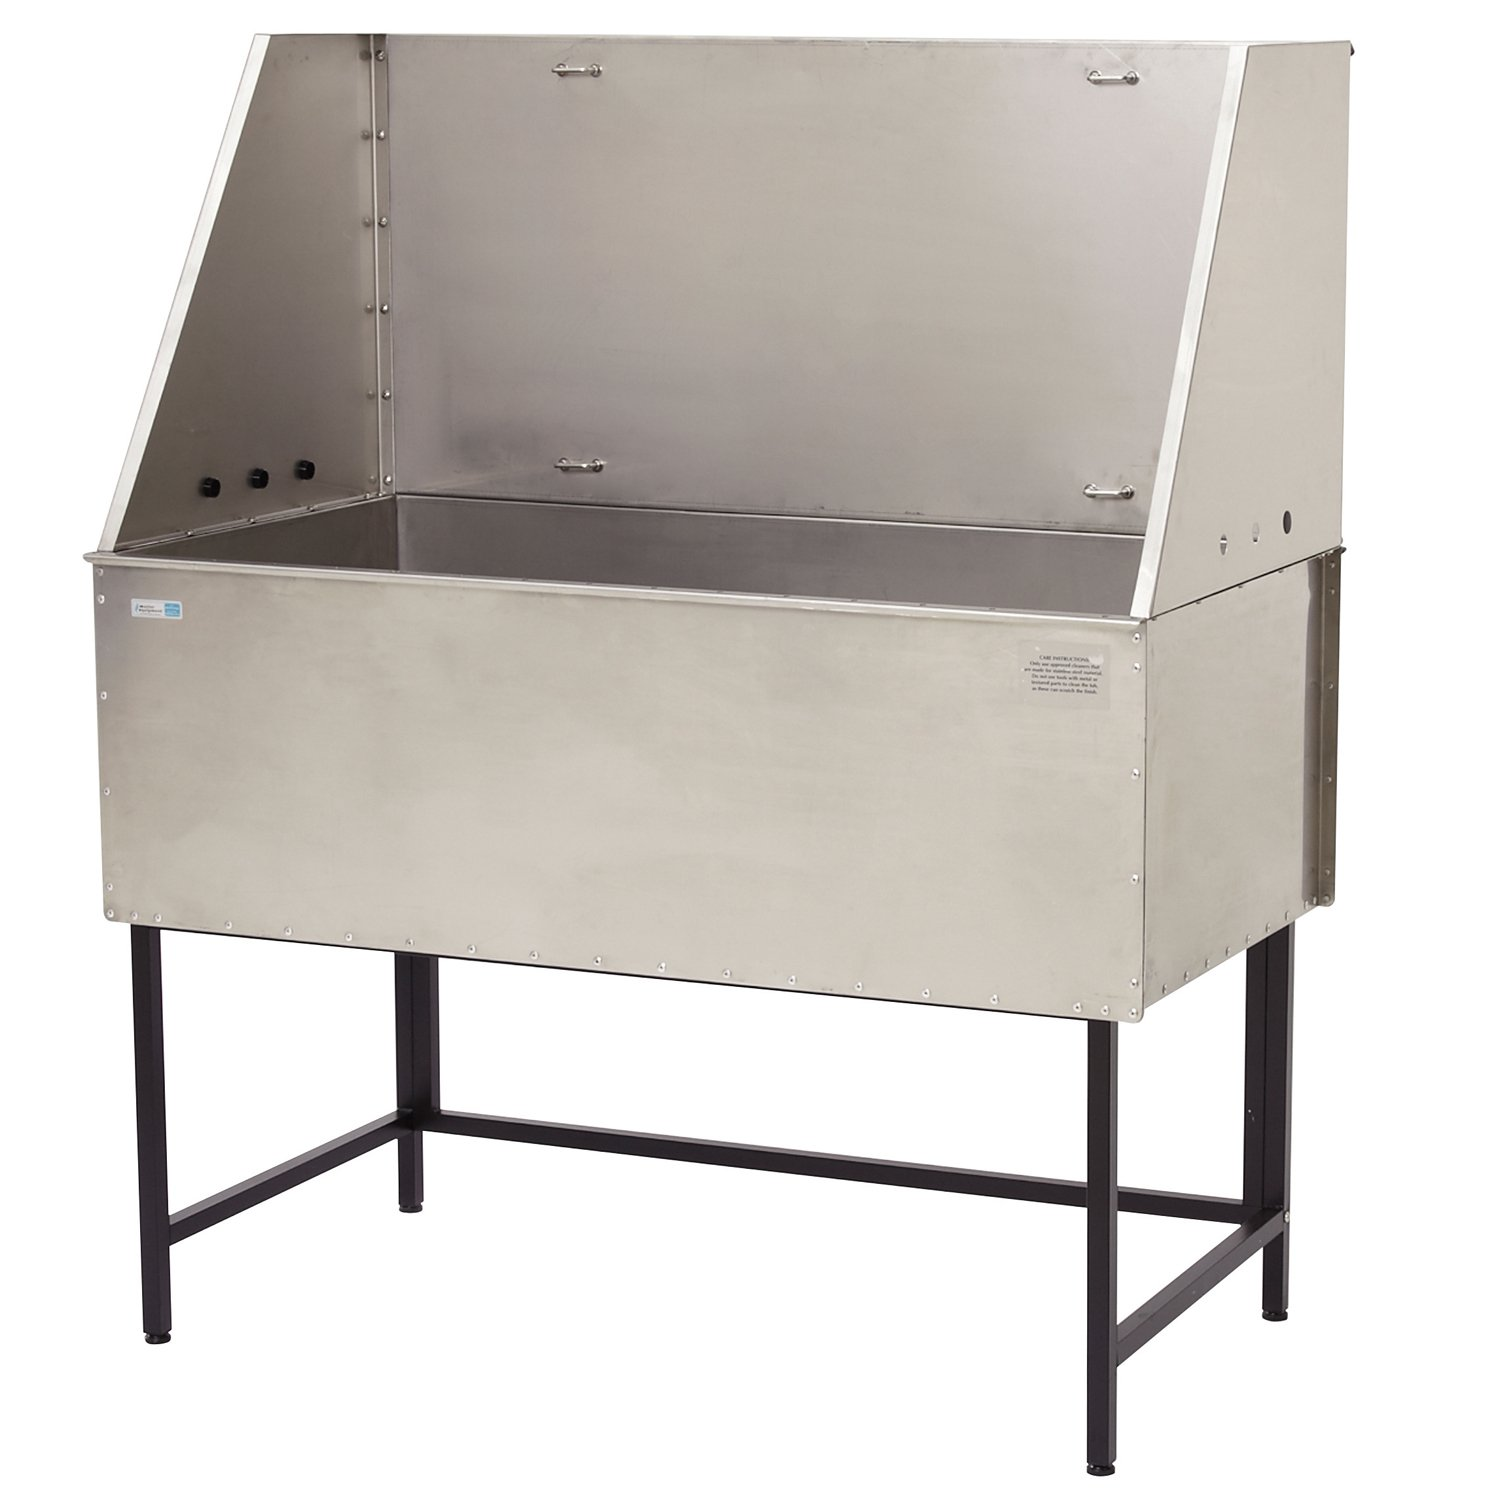 Master Equipment Stainless Steel Everyday Pro Deluxe Pet Tub, 48-Inch